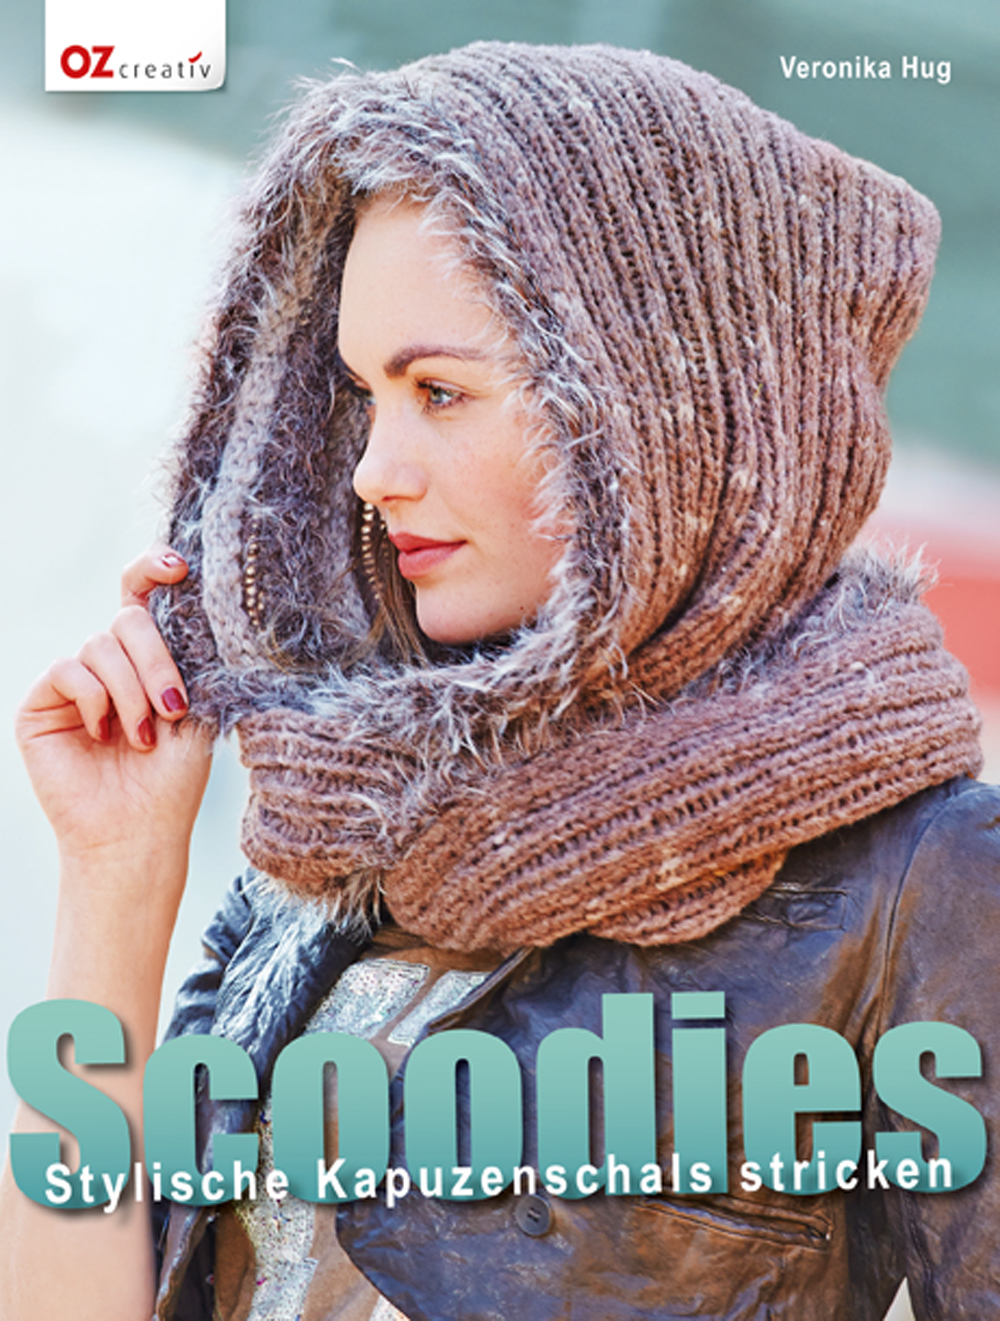 Scoodies: Stylische Kapuzenschals stricken - Ve...